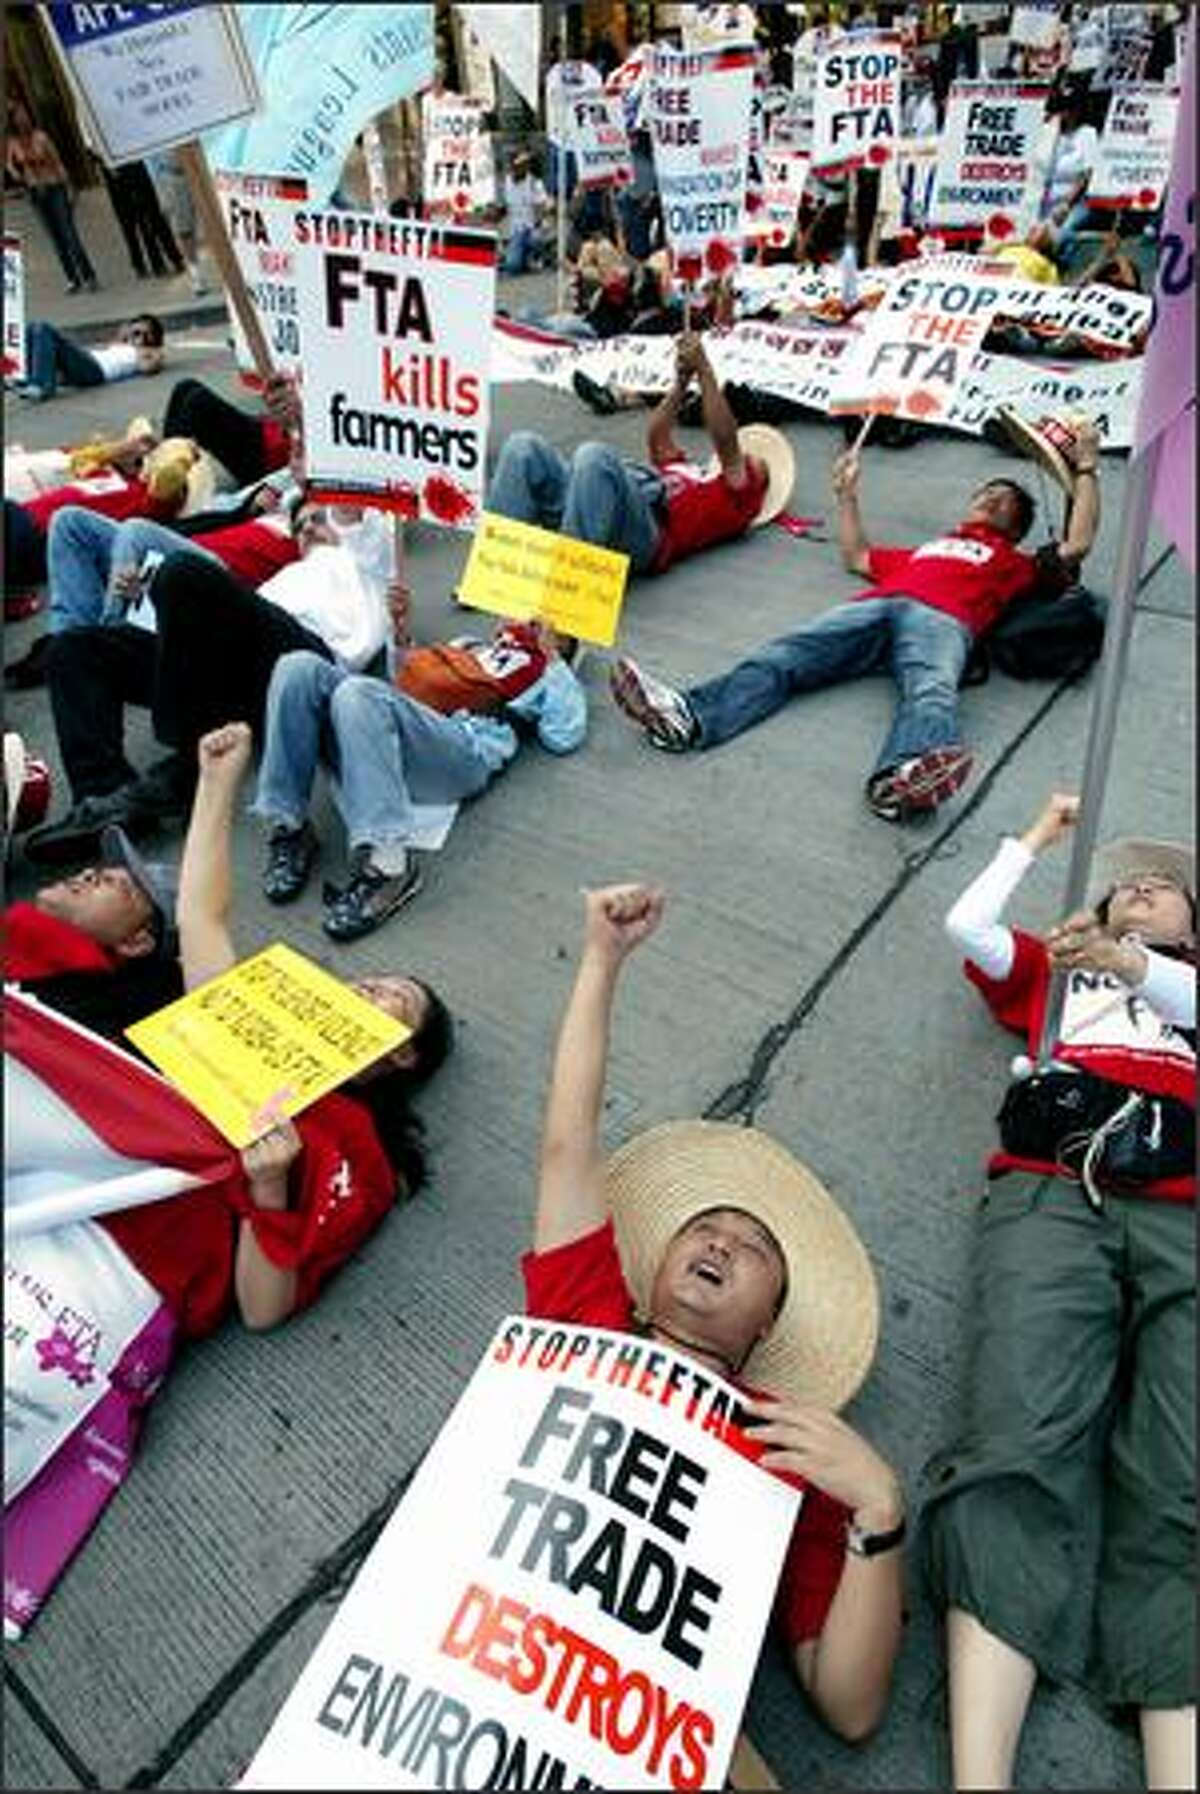 South Korean workers lie in the street in downtown Seattle while leading American union members in a two-hour lunchtime march Wednesday. The group, numbering about 1,000, was protesting negotiations that began Wednesday at the Washington State Convention and Trade Center toward a Korea-U.S. Free Trade Agreement. No violence was reported.